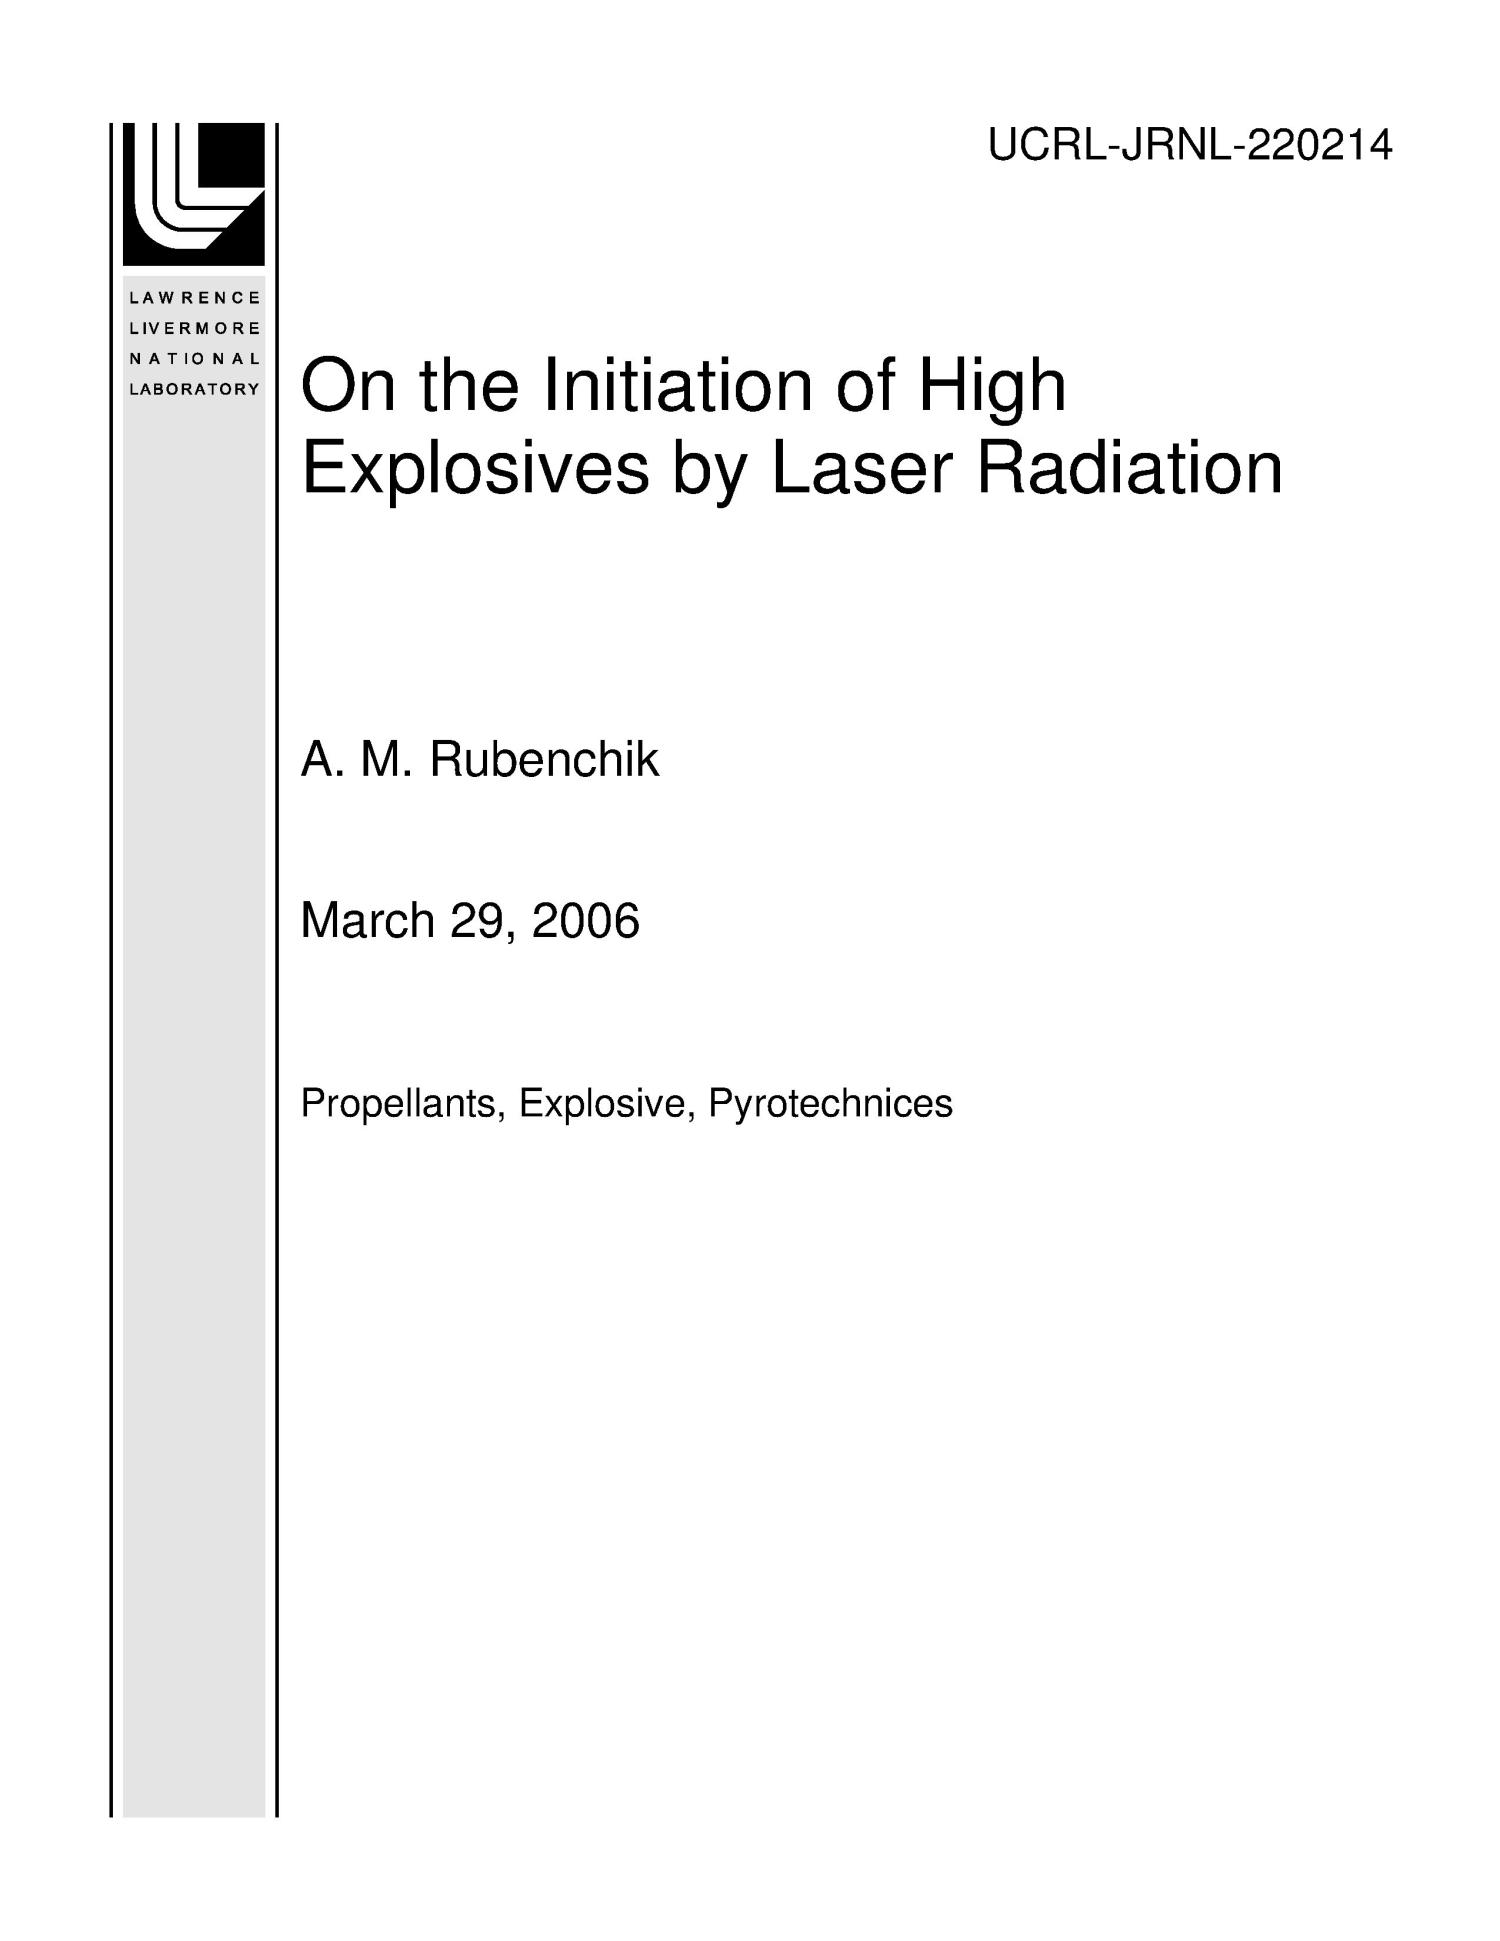 On the Initiation of High Explosives by Laser Radiation                                                                                                      [Sequence #]: 1 of 12